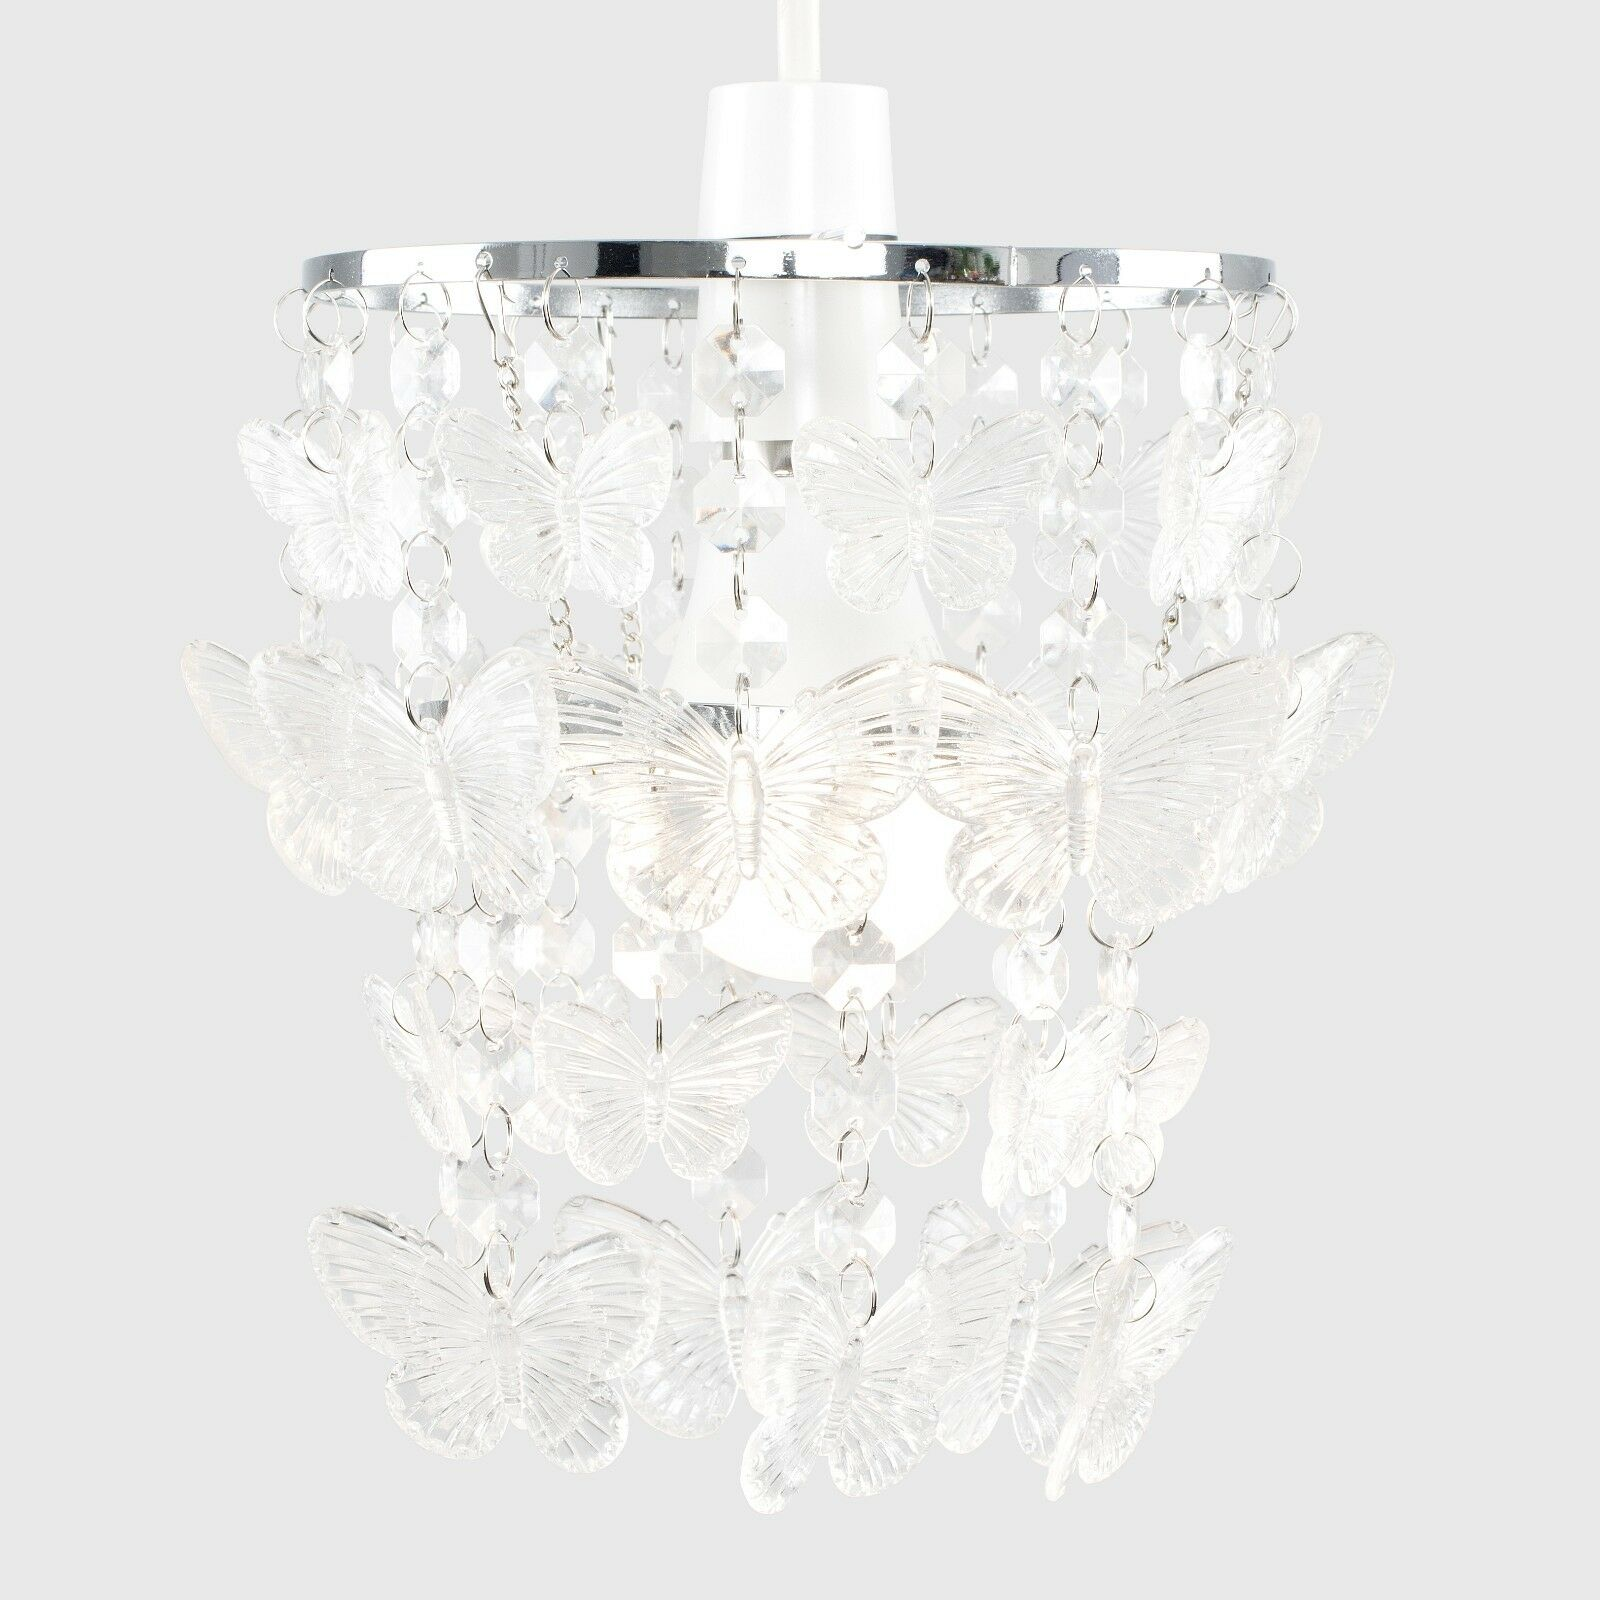 Modern-Acrylic-Crystal-Ceiling-Pendant-Light-Shade-Jewel-Chandeliers-Shades-NEW thumbnail 24